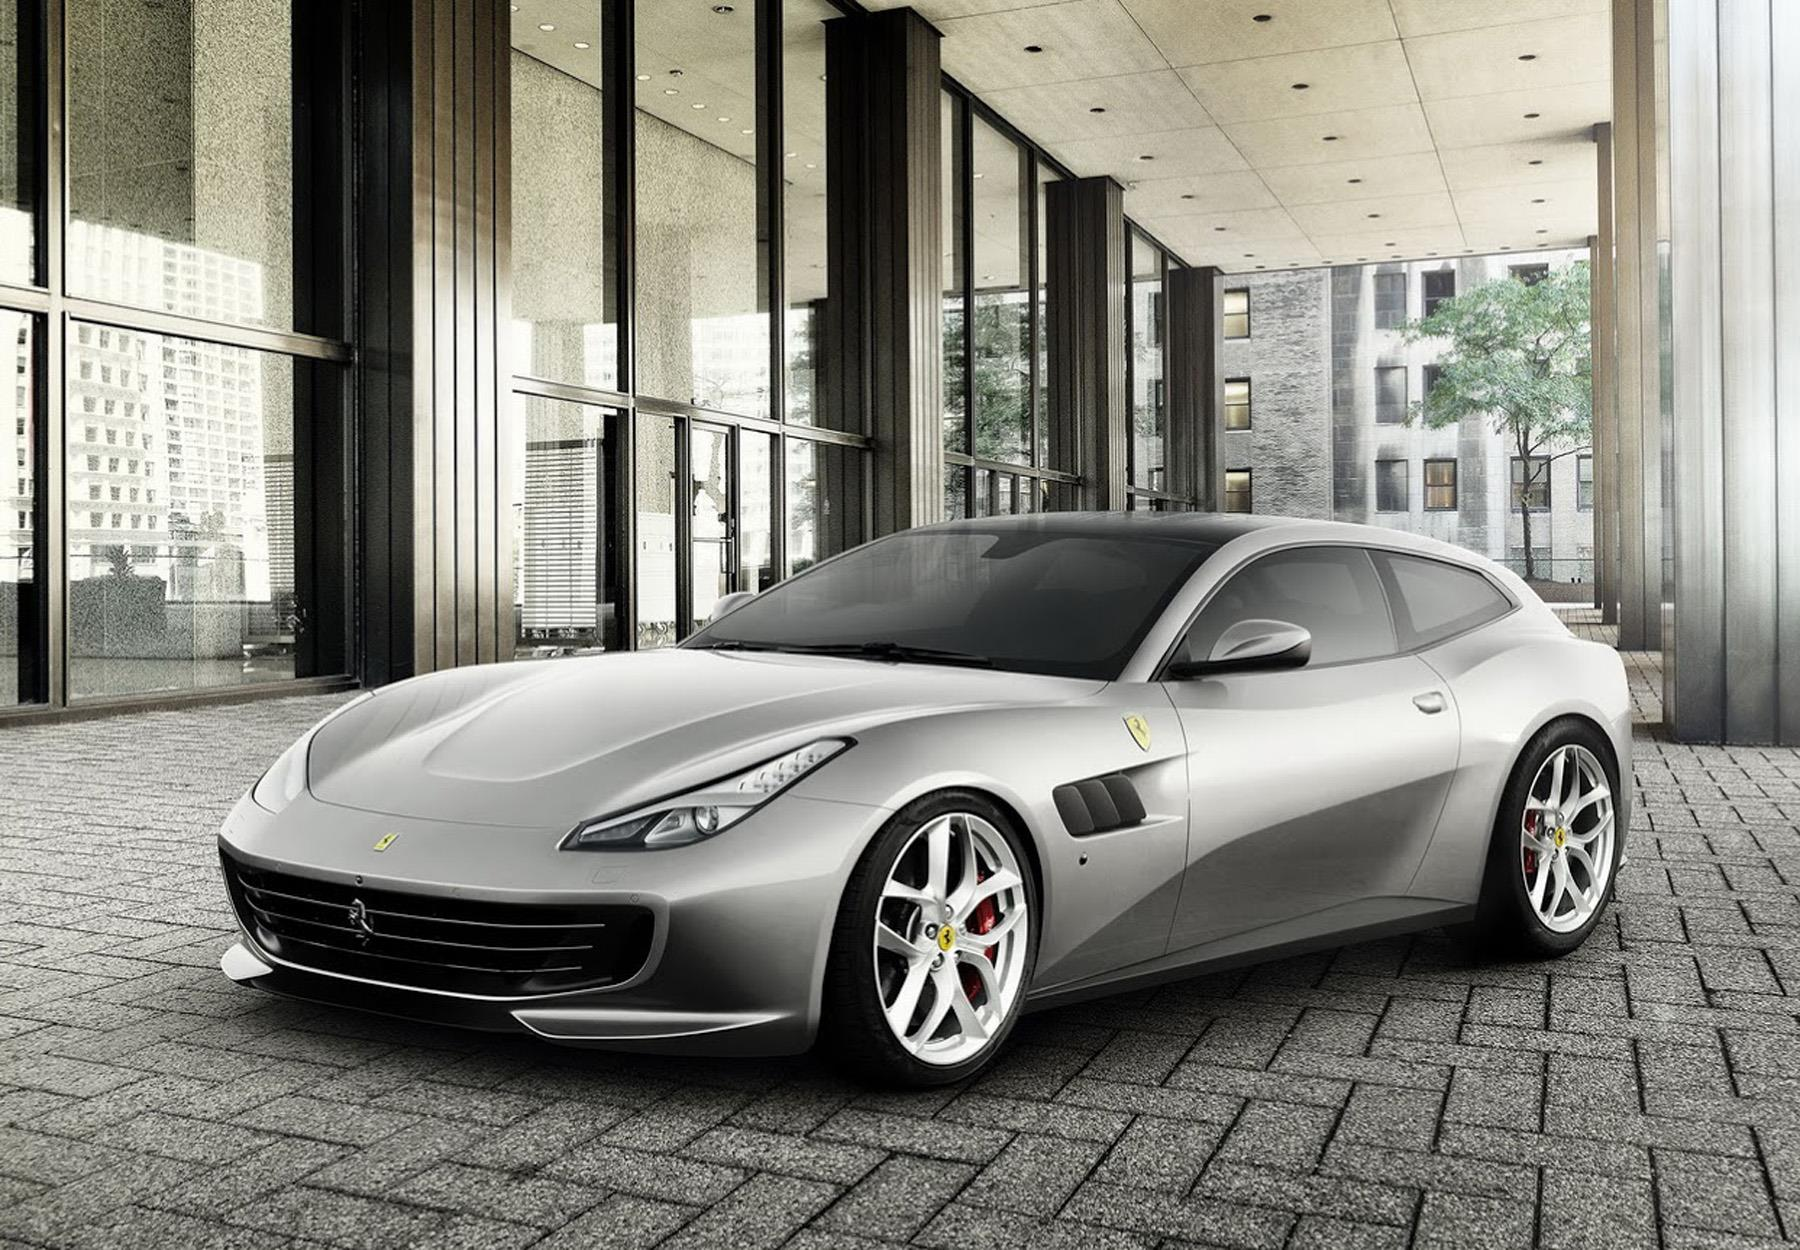 Ferrari GTC4Lusso India launch on August 2, 2017